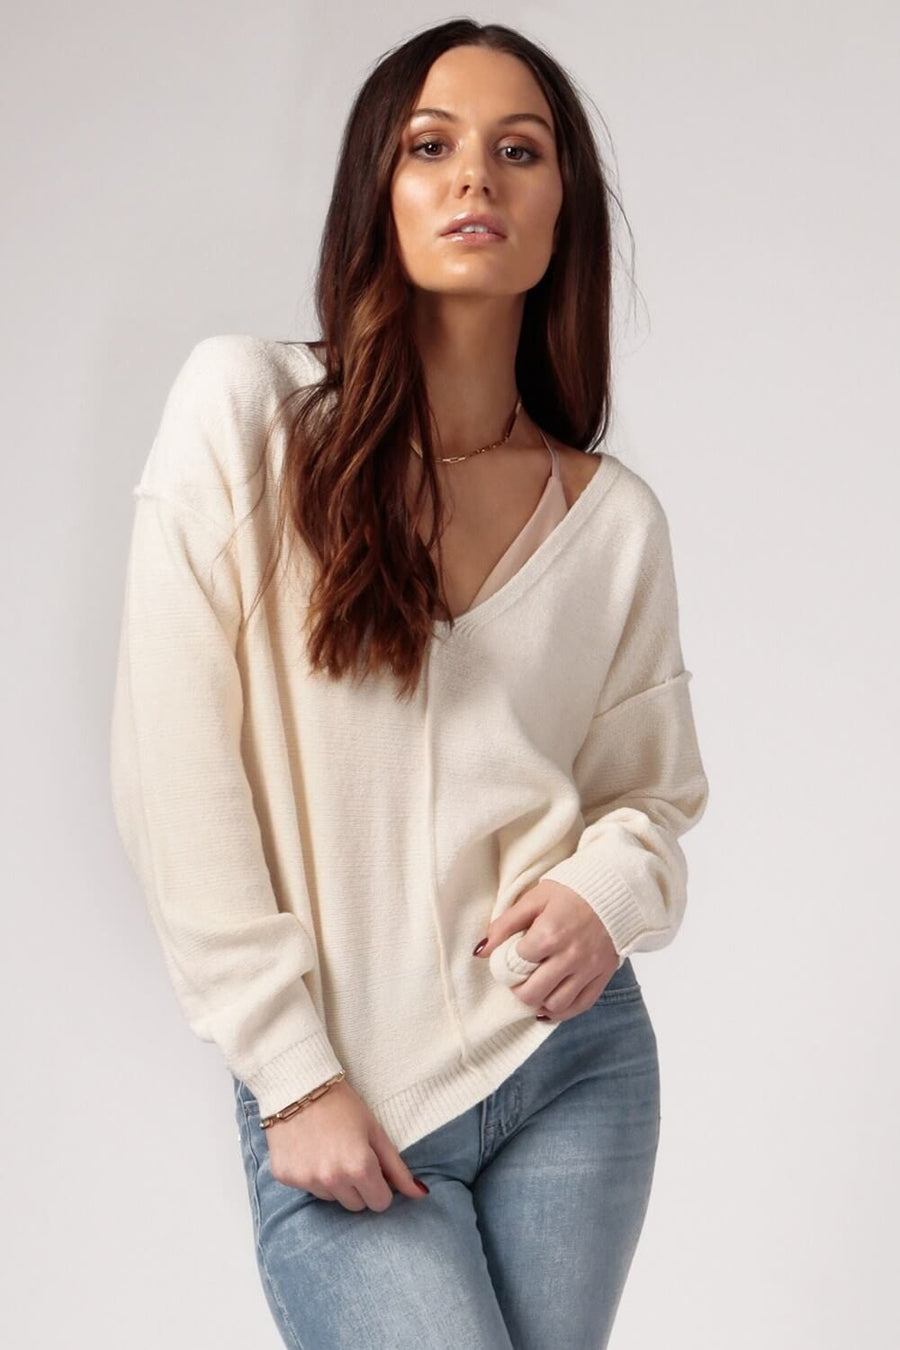 Women's white oversized vneck sweater